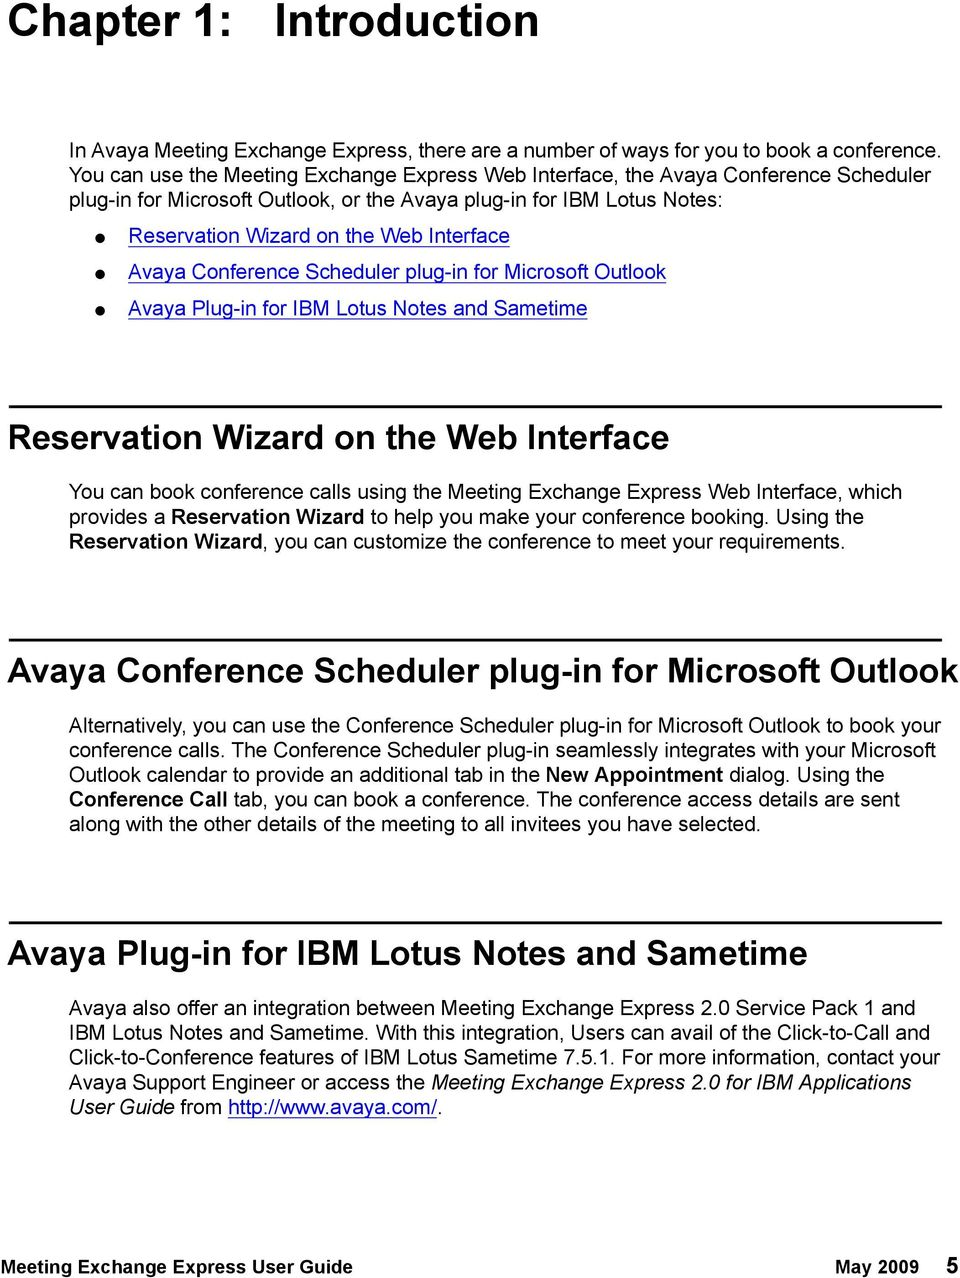 Avaya Conference Scheduler plug-in for Microsoft Outlook Avaya Plug-in for IBM Lotus Notes and Sametime Reservation Wizard on the Web Interface You can book conference calls using the Meeting